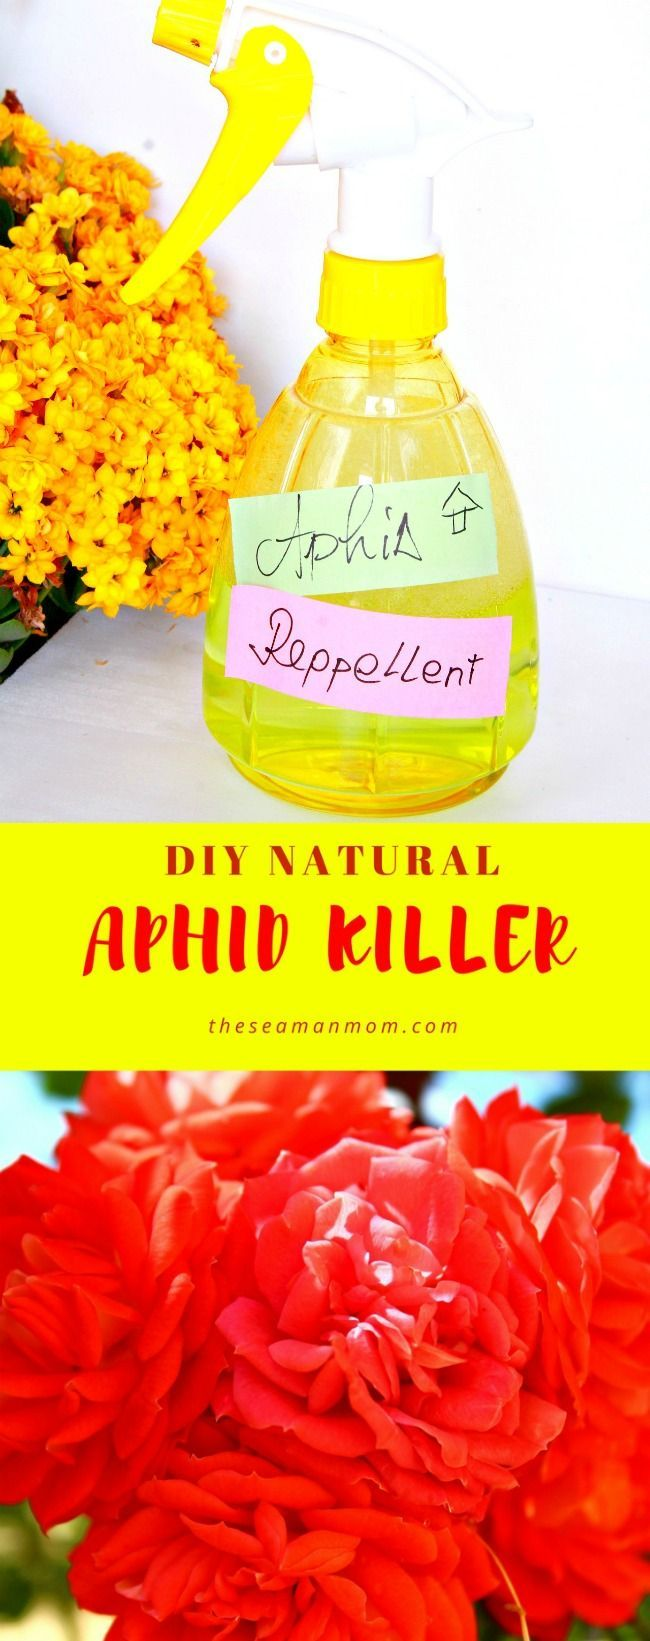 NATURAL DIY APHID REPELLENT- Getting rid of aphids in your garden doesn't have to involve toxic chemicals when you can make your own natural DIY aphid repellent in just a couple of minutes!